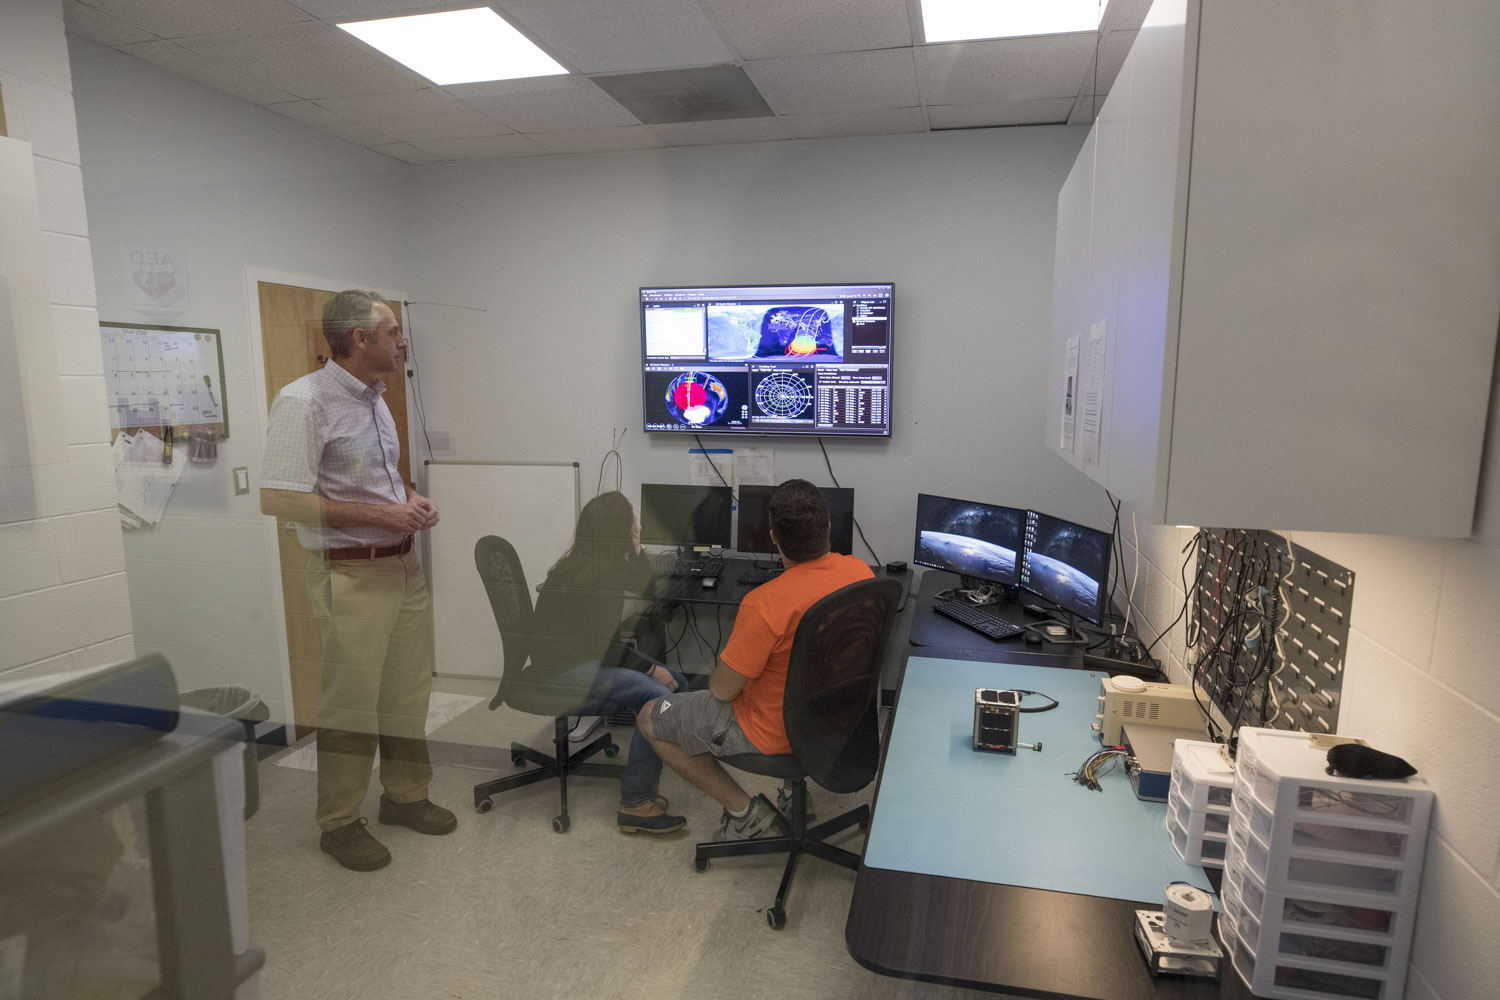 Professor Chris Goyne with students Erin Puckette and Trace LaCour in the CubeSat mission control room at the Engineering School.